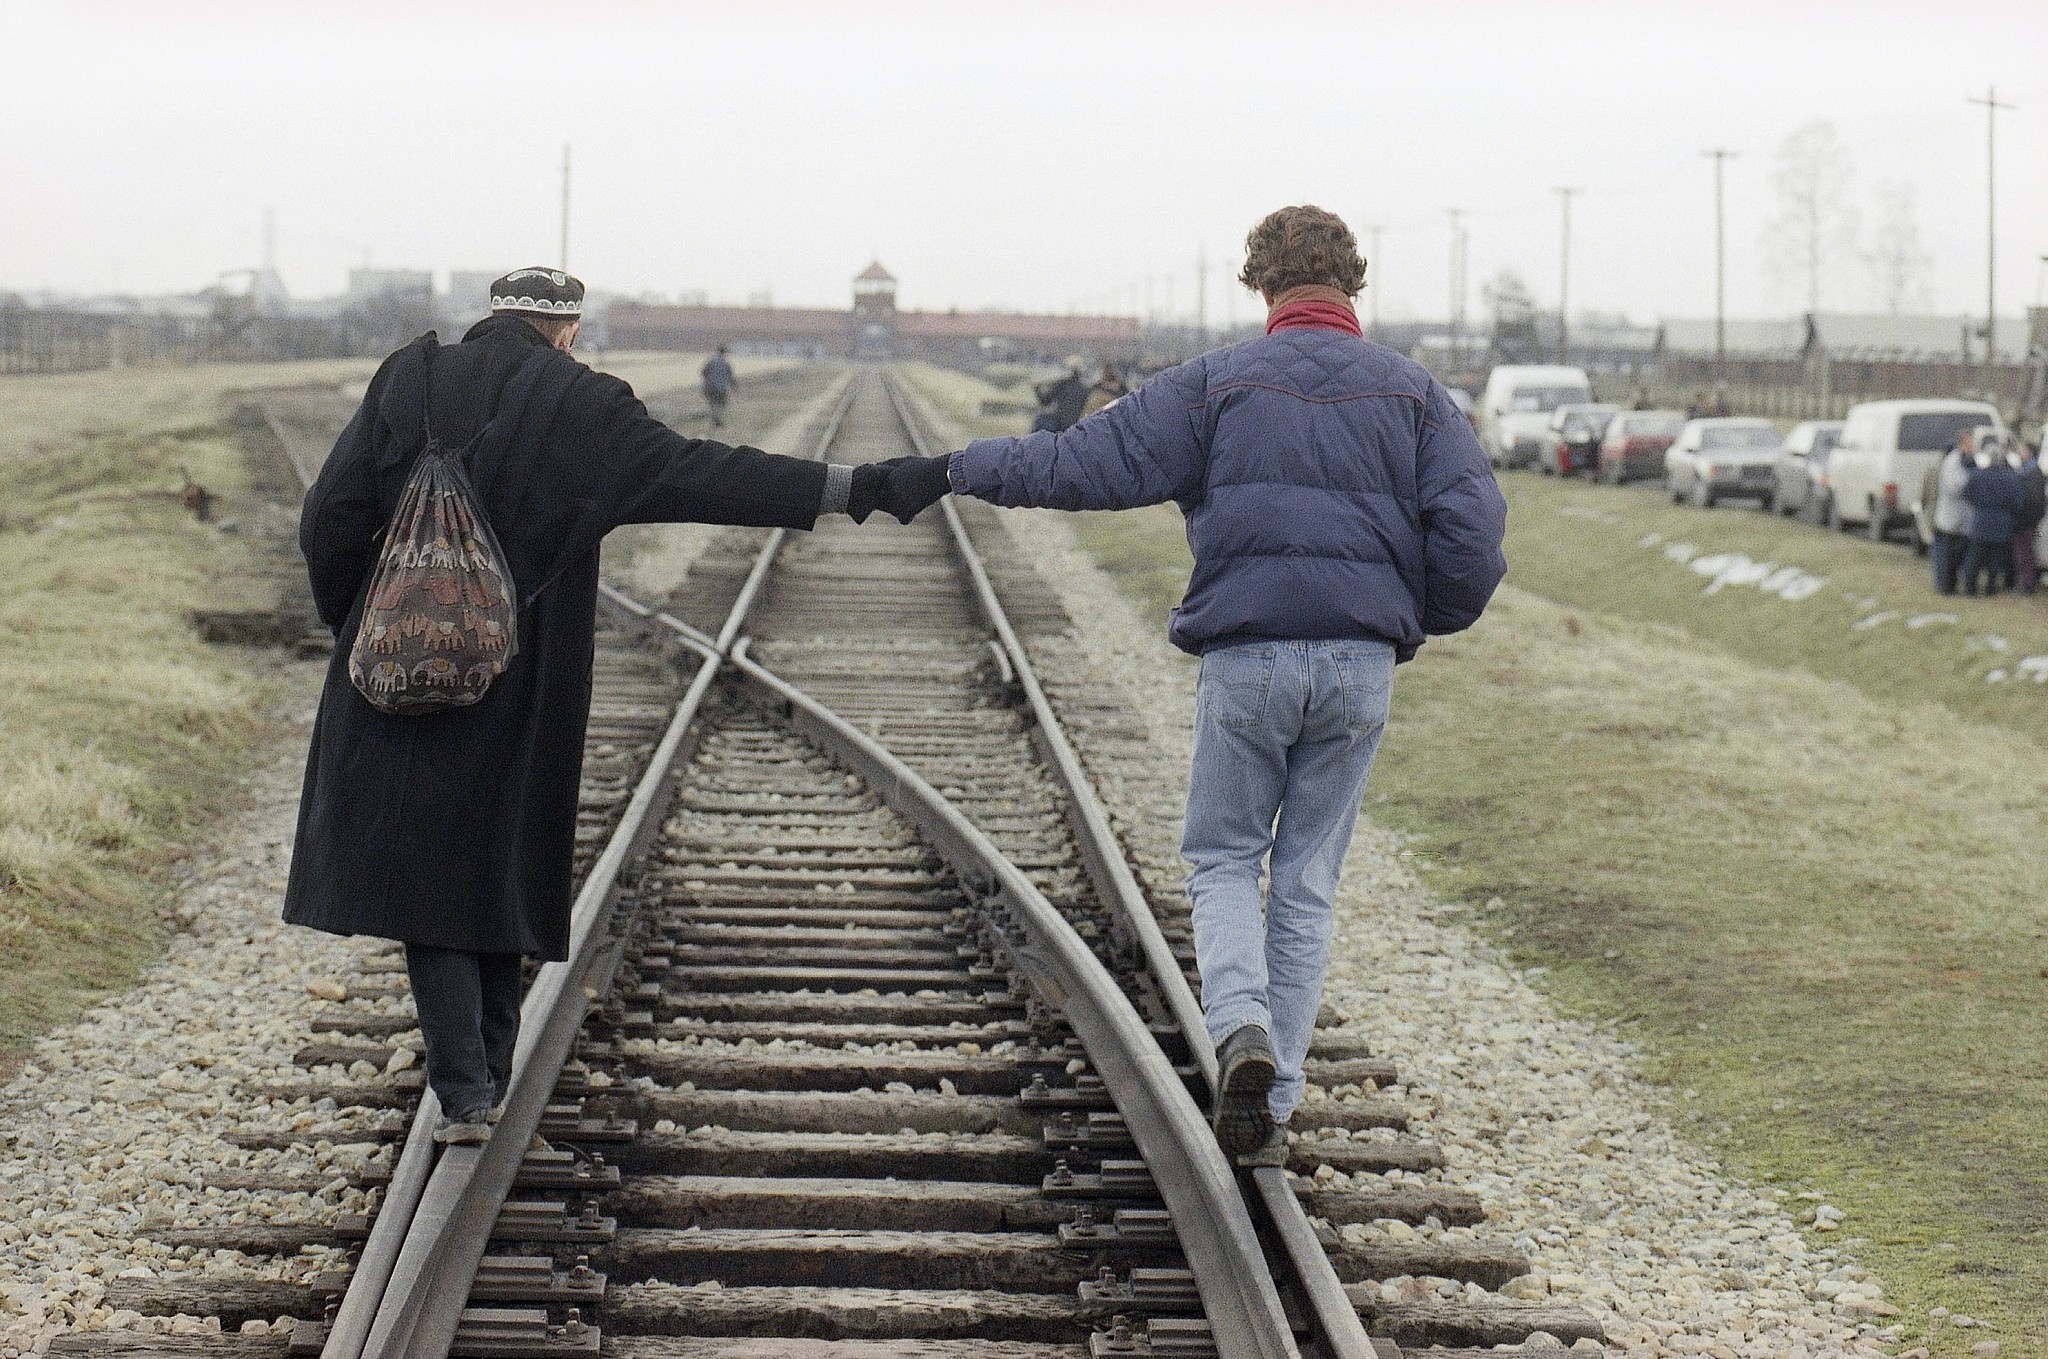 Auschwitz Museum asks visitors not to balance on train tracks